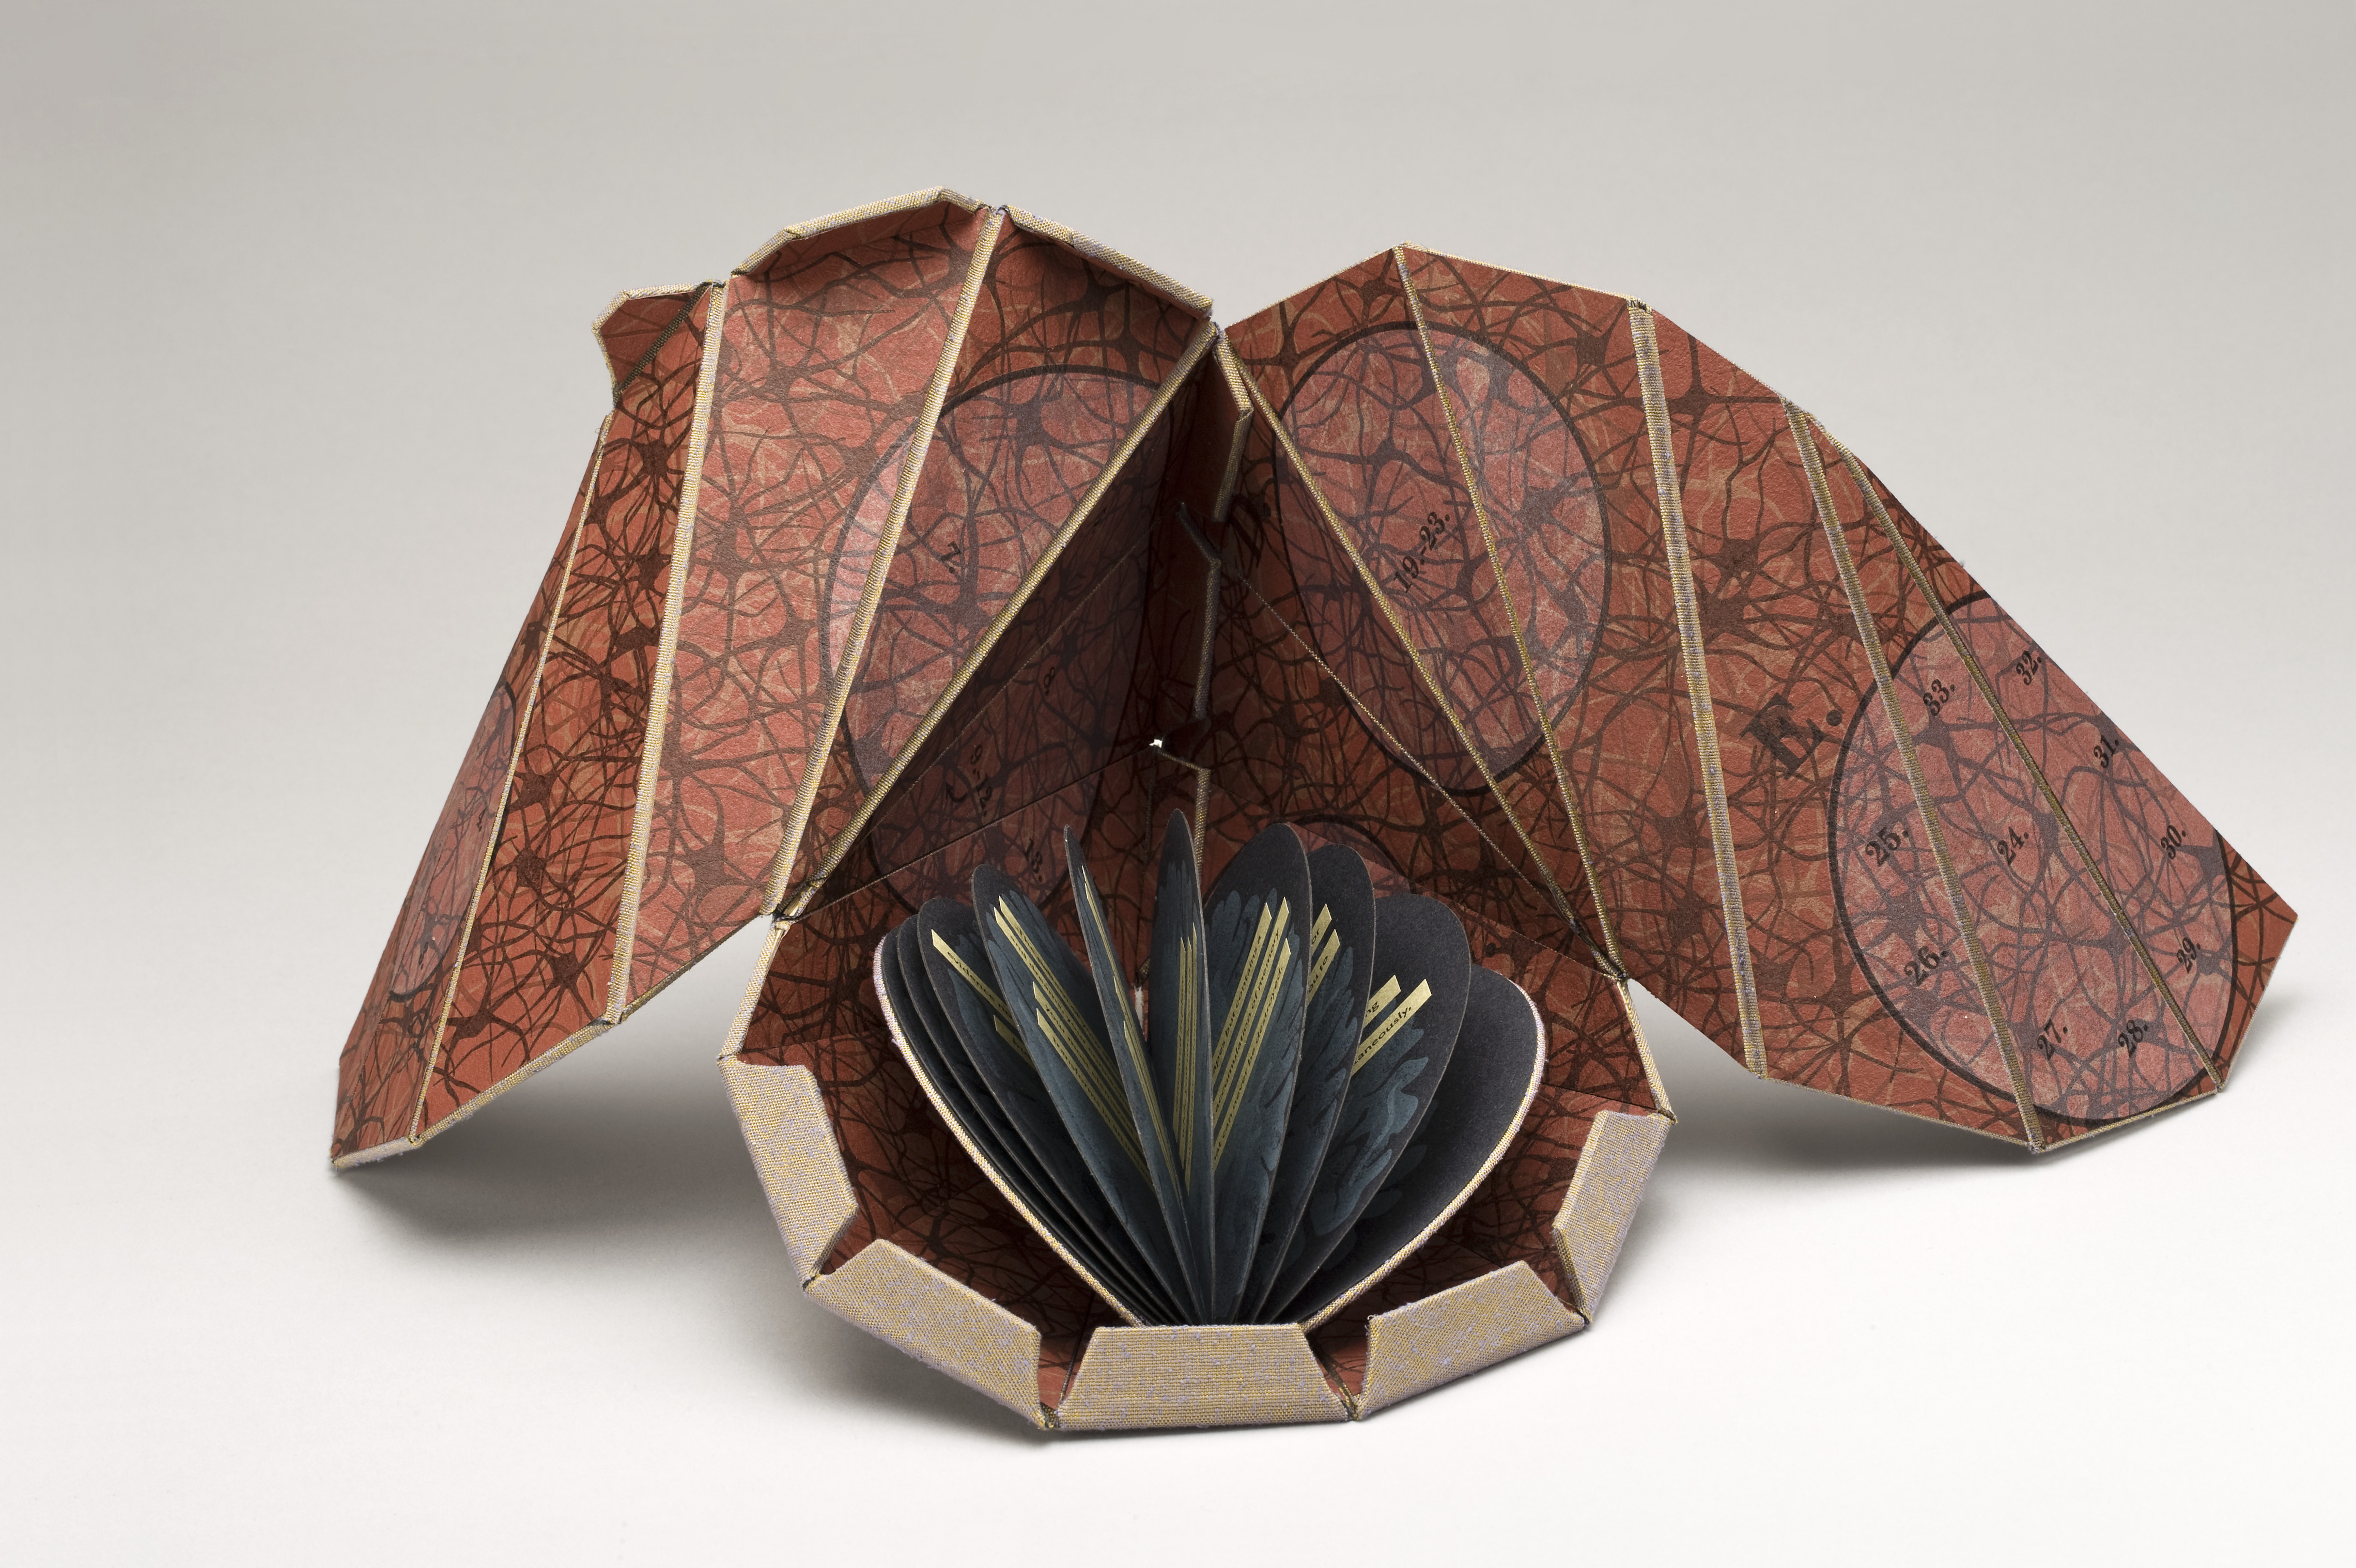 An open artist's book that is teardrop-shaped with two open flaps that resemble wings. The interior is an earthy red color with veiny brown lines. Inside the open teardrop shape is a tiny circular book with navy half-moon shaped pages.